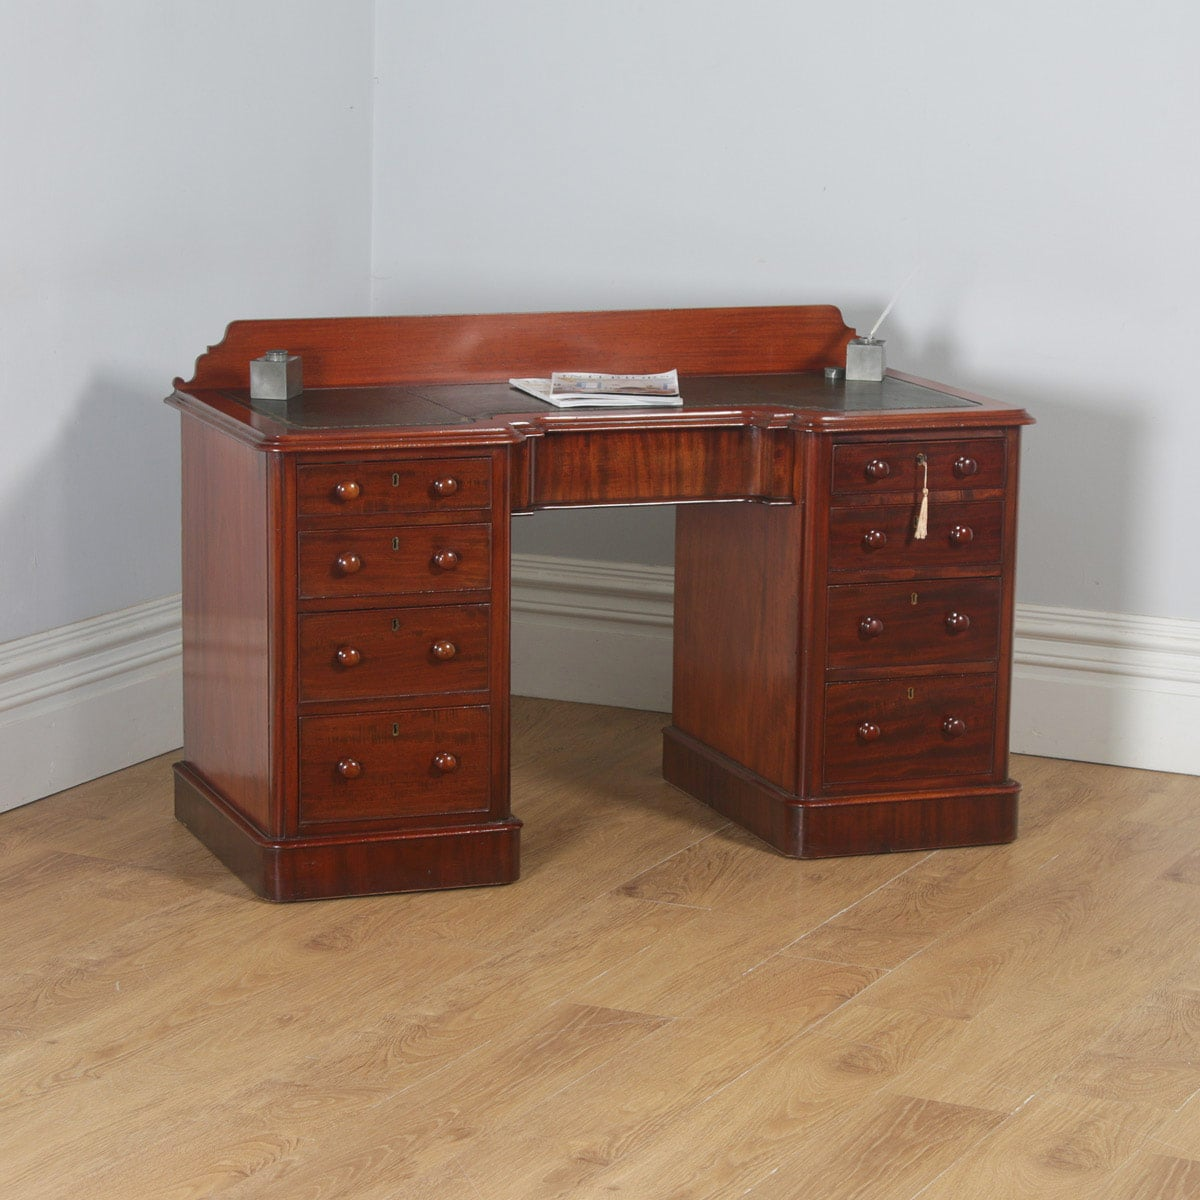 Mahogany Office Desk Antique Victorian Mahogany Leather 4ft 6 Breakfront Pedestal Office Desk Circa 1870